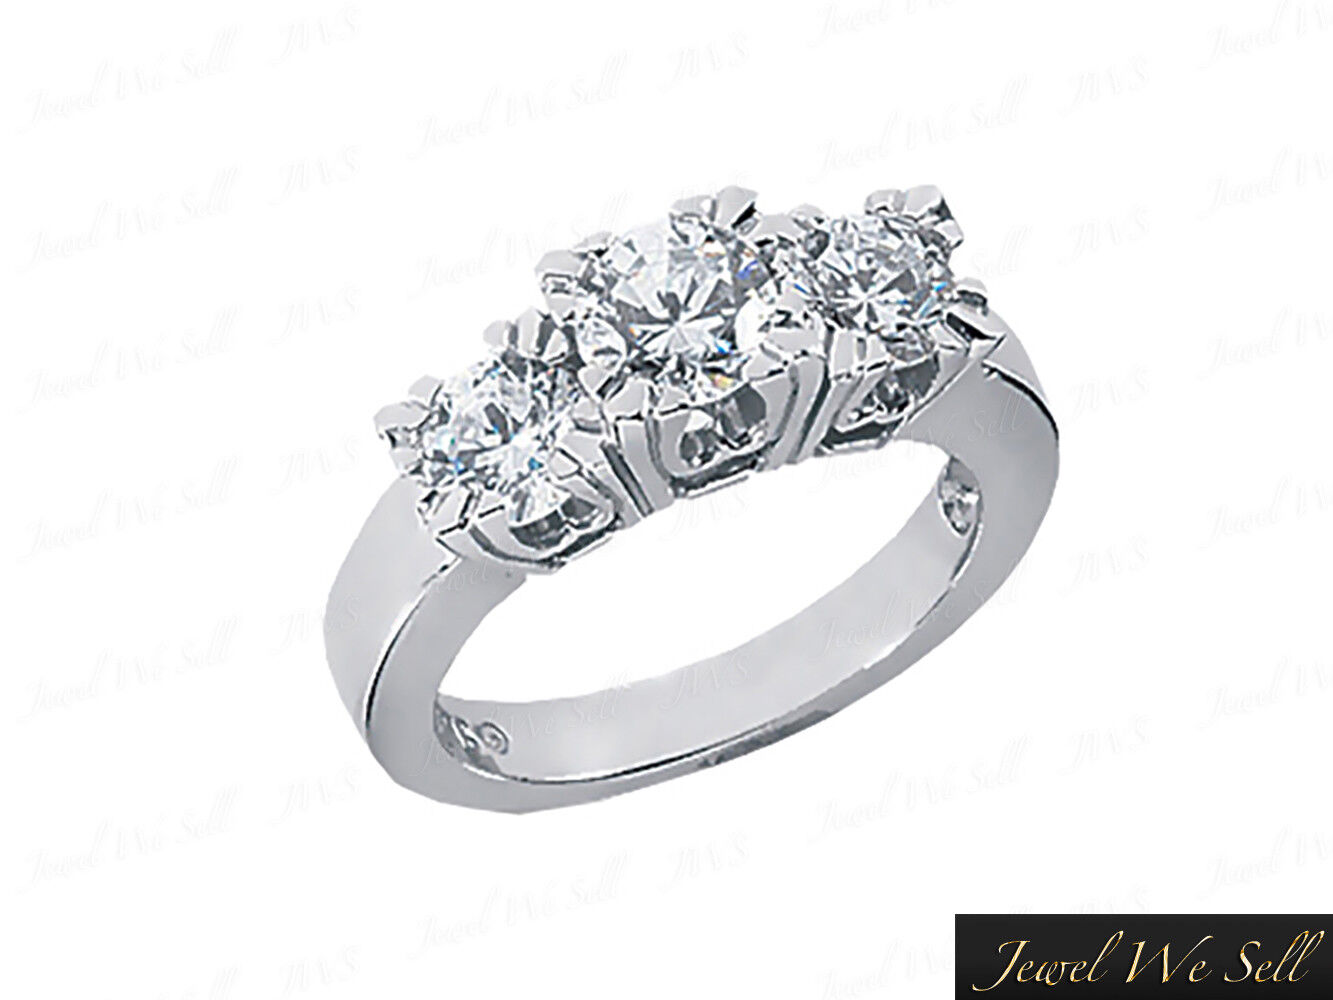 Genuine 1 2ct Round Diamond 3Stone Engagement Ring 14K White gold GH I1 Prong